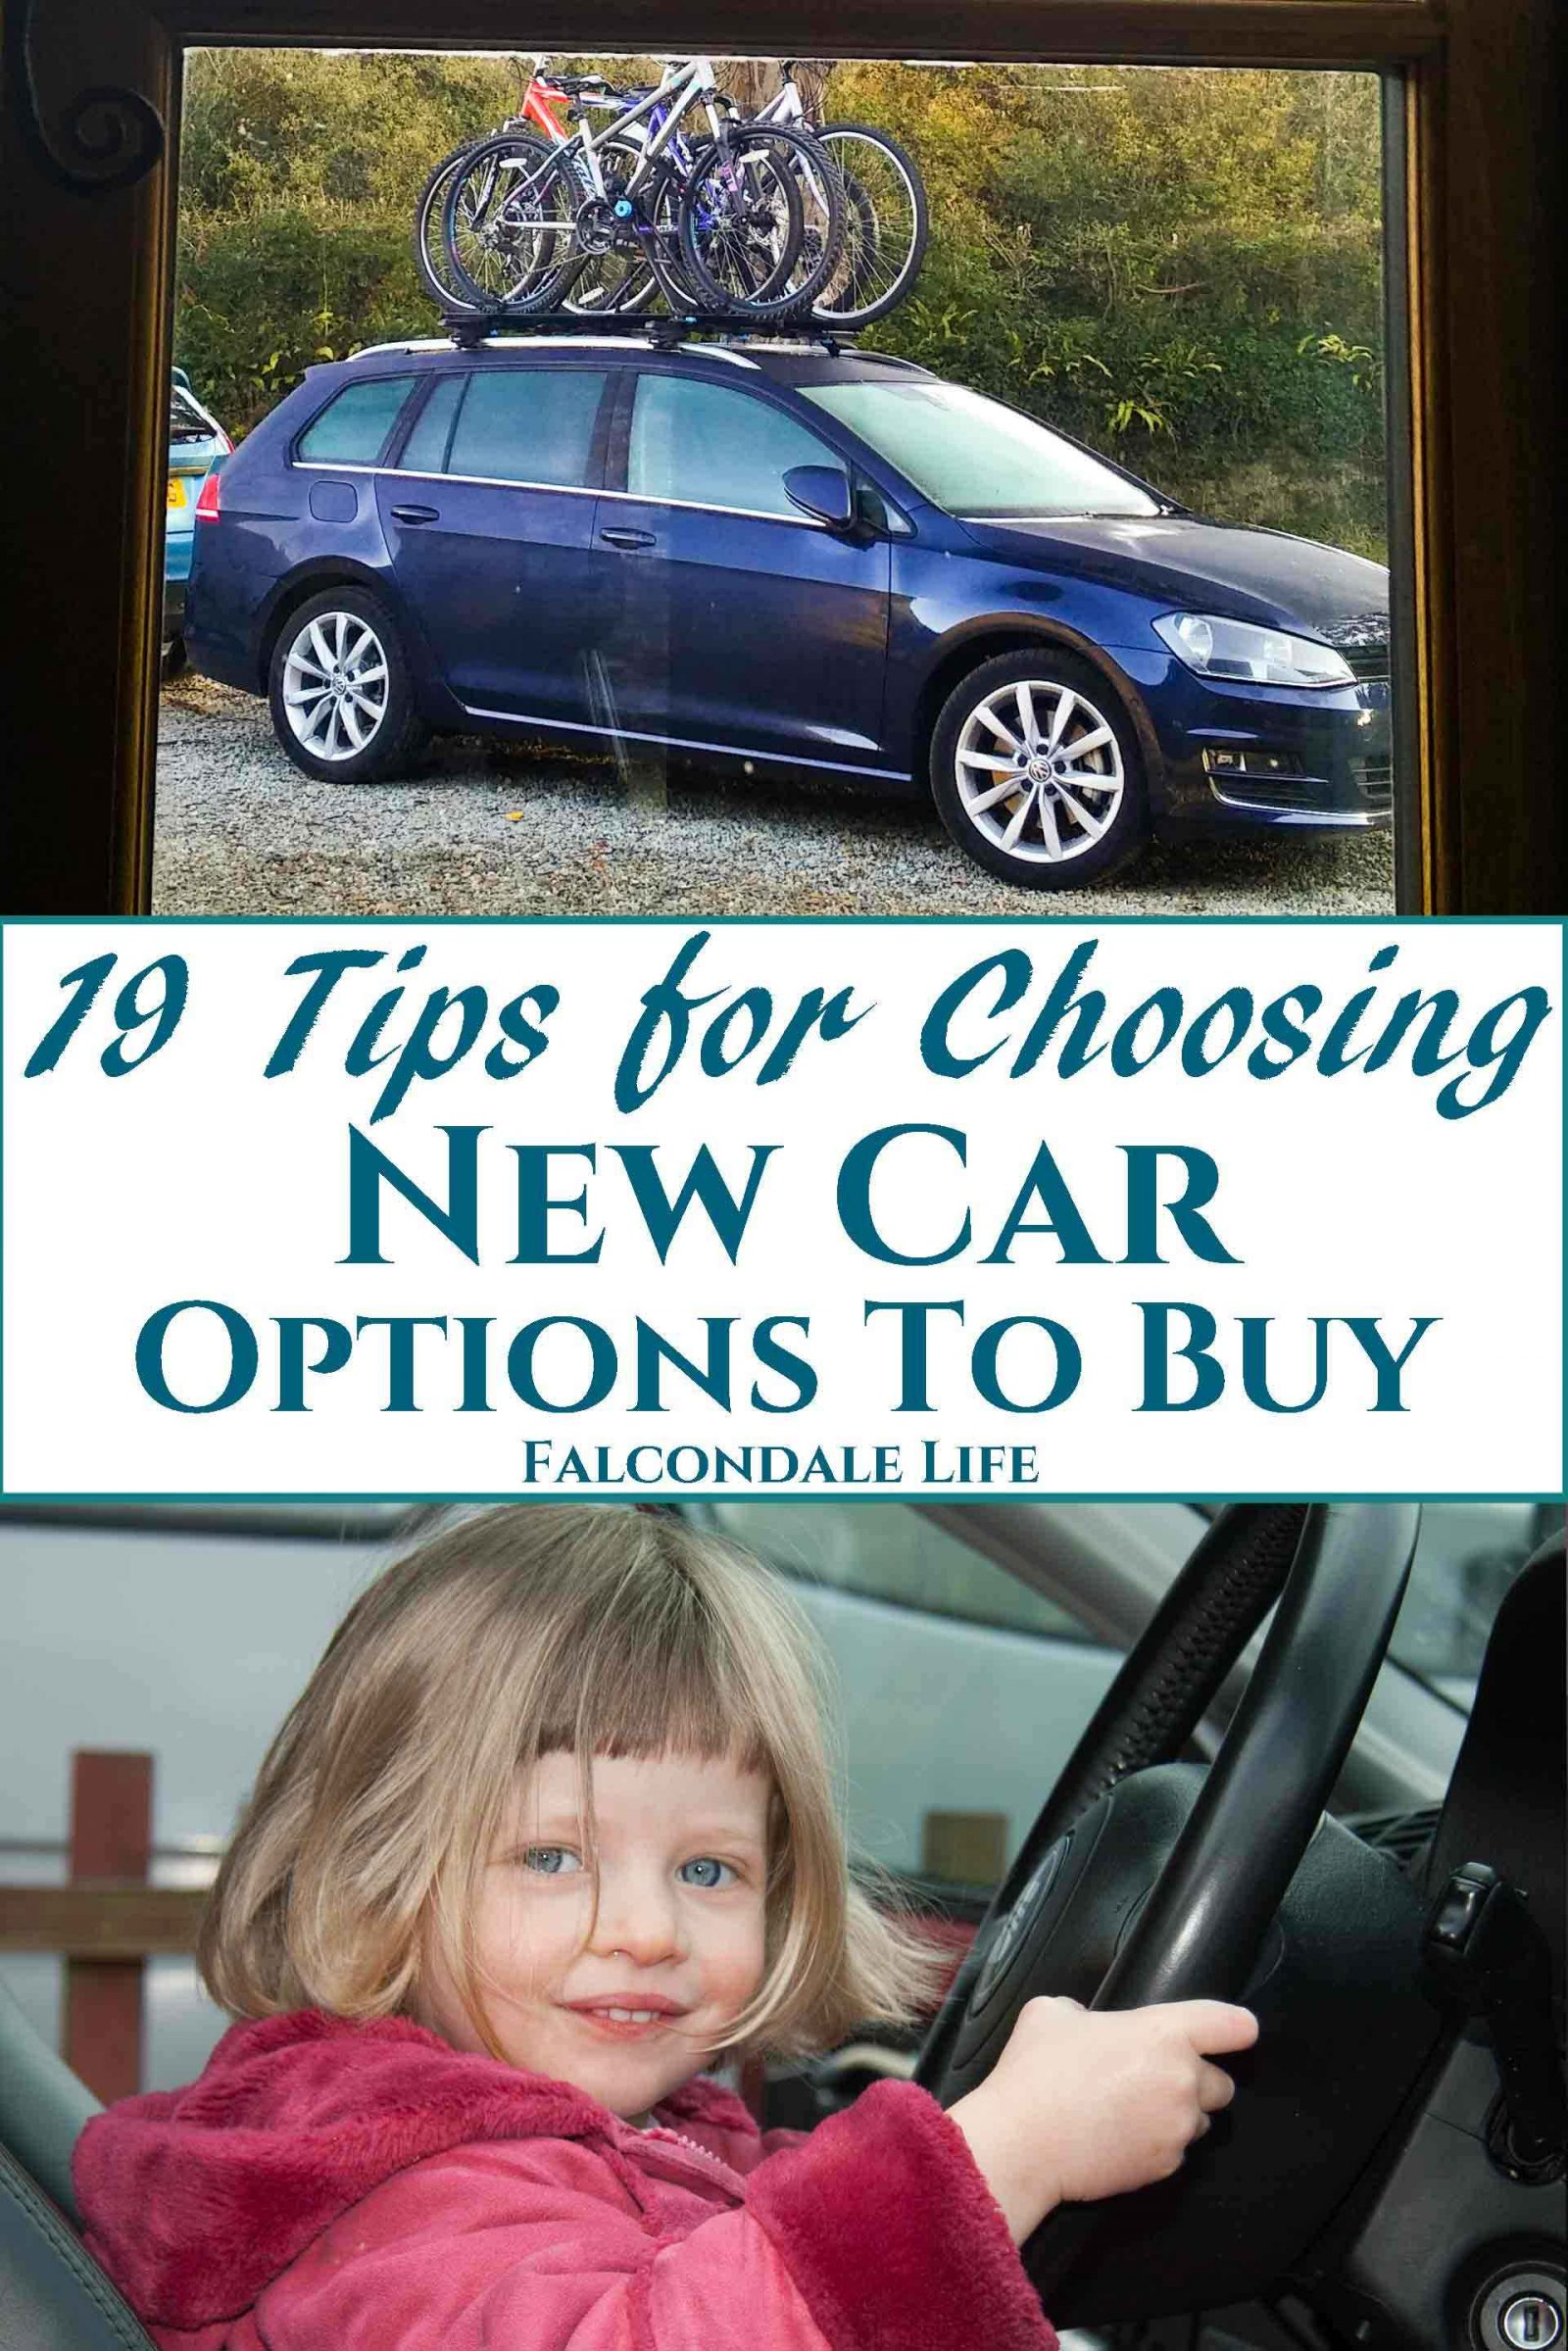 Pin this for later. 19 Tips for Choosing New Car Options on Falcondale Life blog. #carscom #ad Tips on choosing car options when buying new. We've lived with the options on our car for a while so here is my guide to selecting new car options by Falcondalejan. Spend right, stay safe, get comfy. Don't let the dealer confuse you.